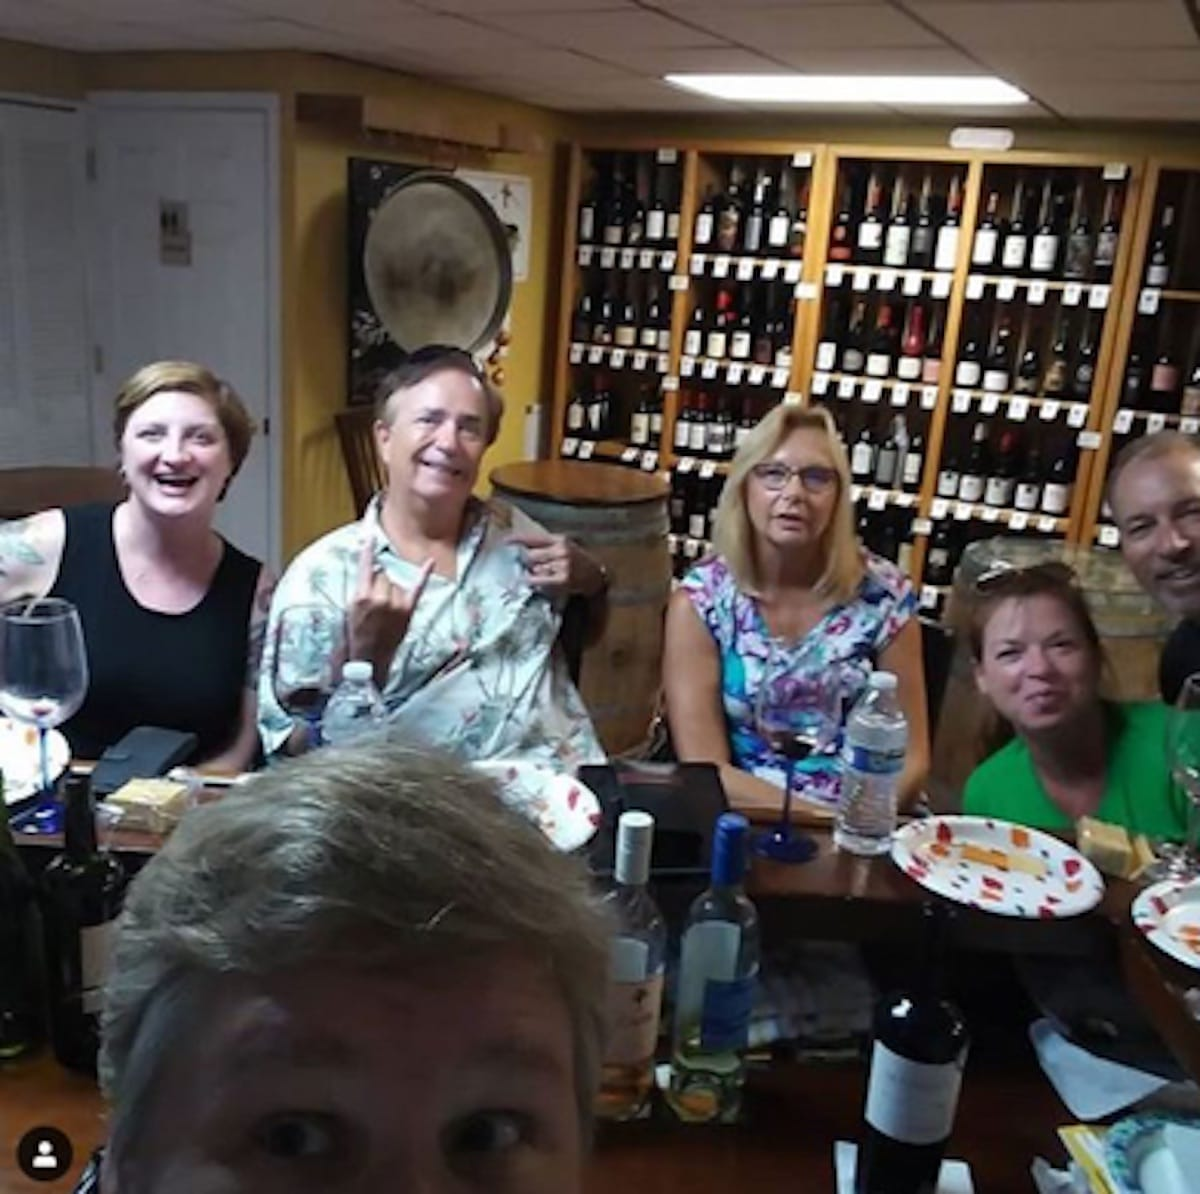 Image of 6 friends at the Casa Jimenez wine shop in Tampa drinking wine